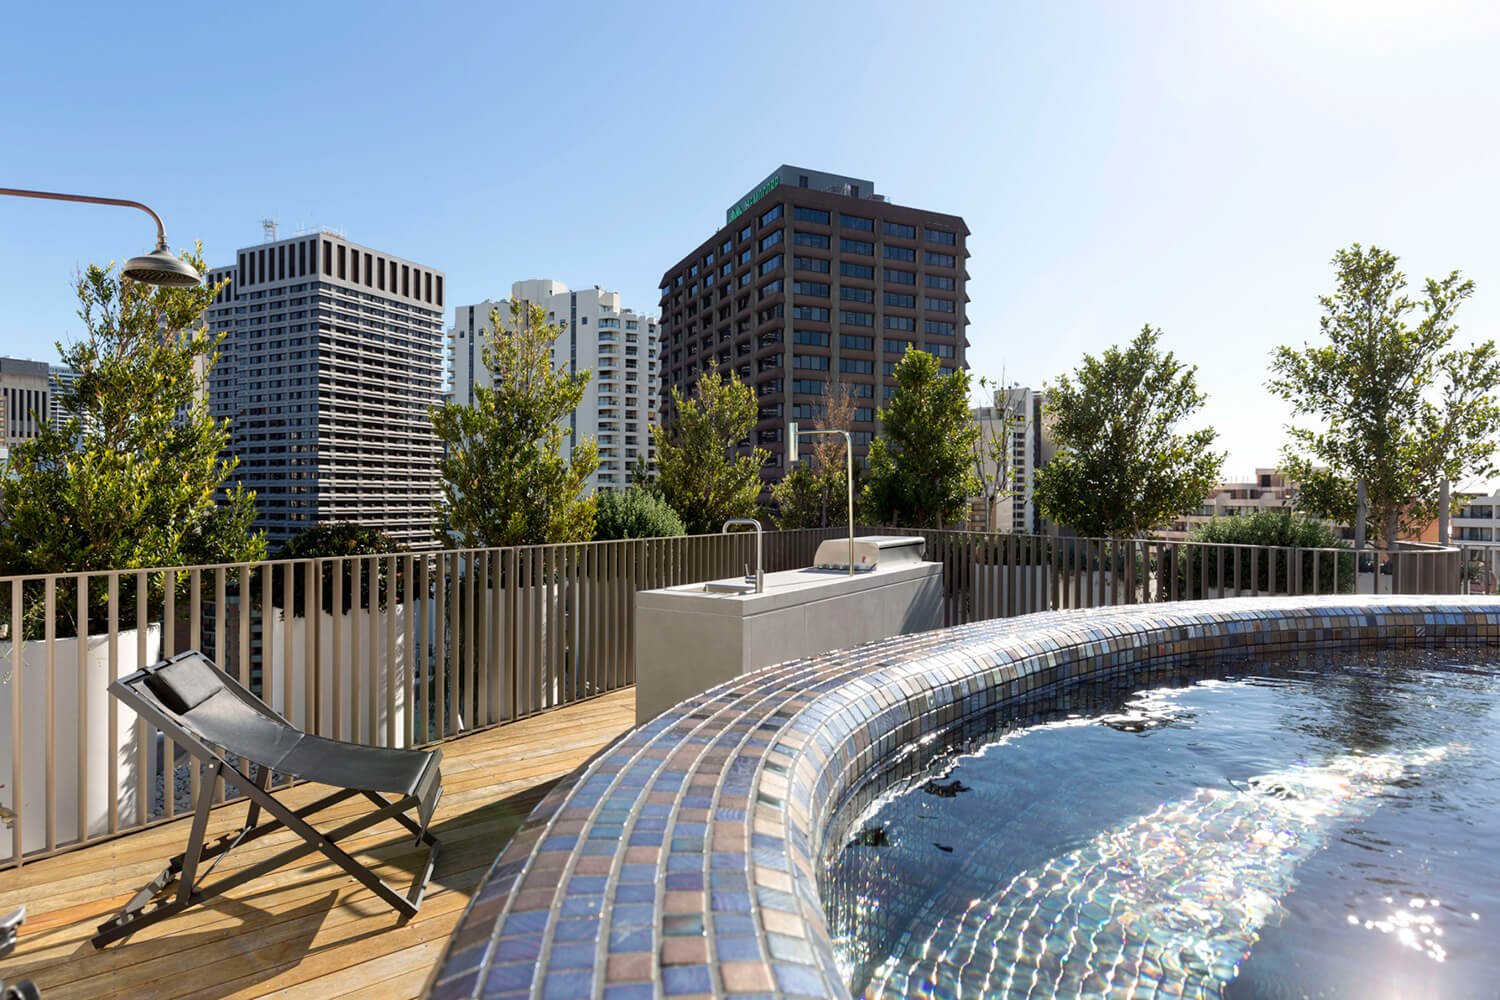 est living open house surry hills roof top apartment bresic whitney.22